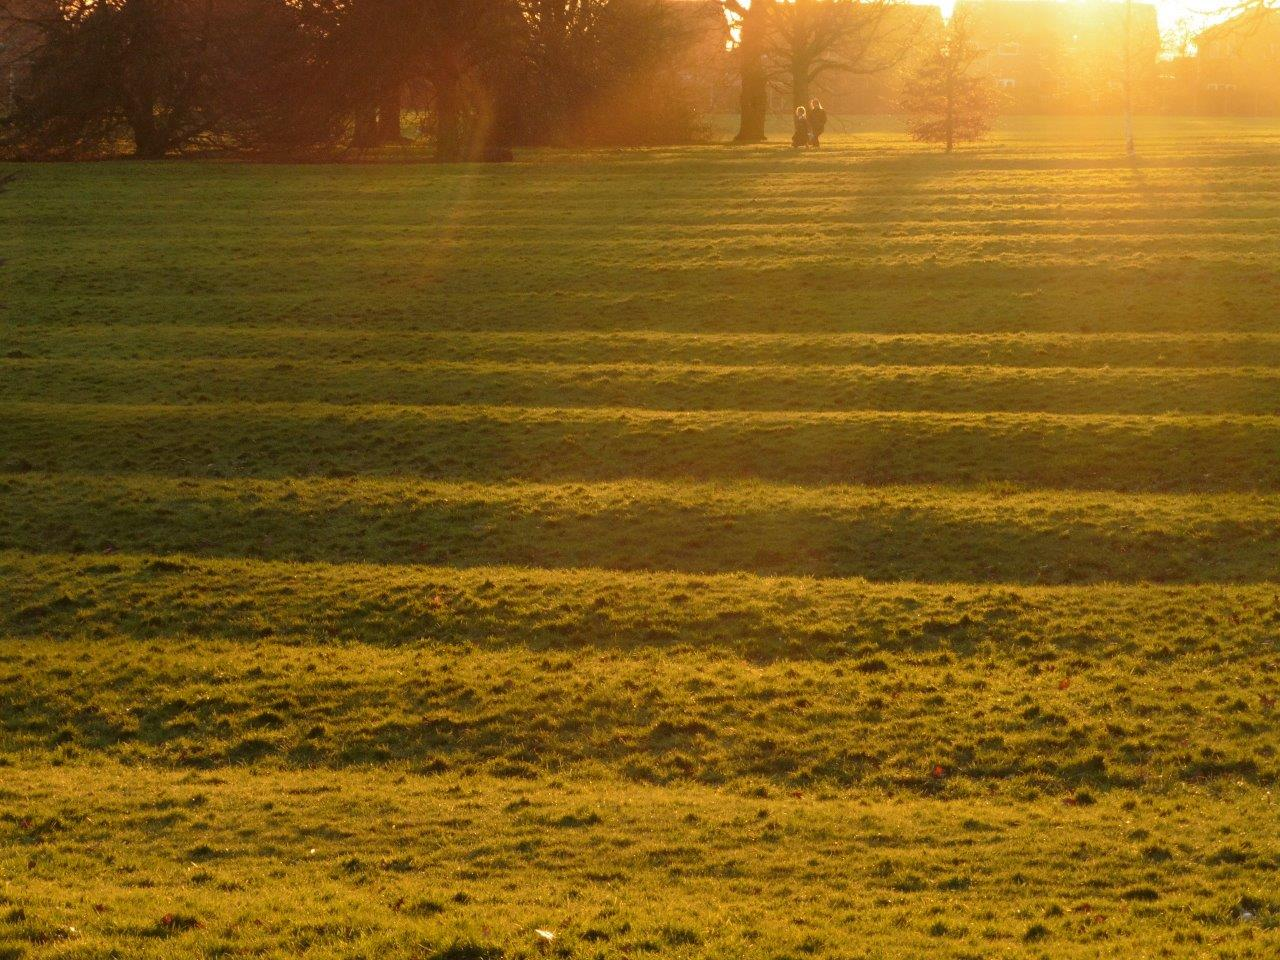 Clemsons Park - view over ridge and furrow to setting sun